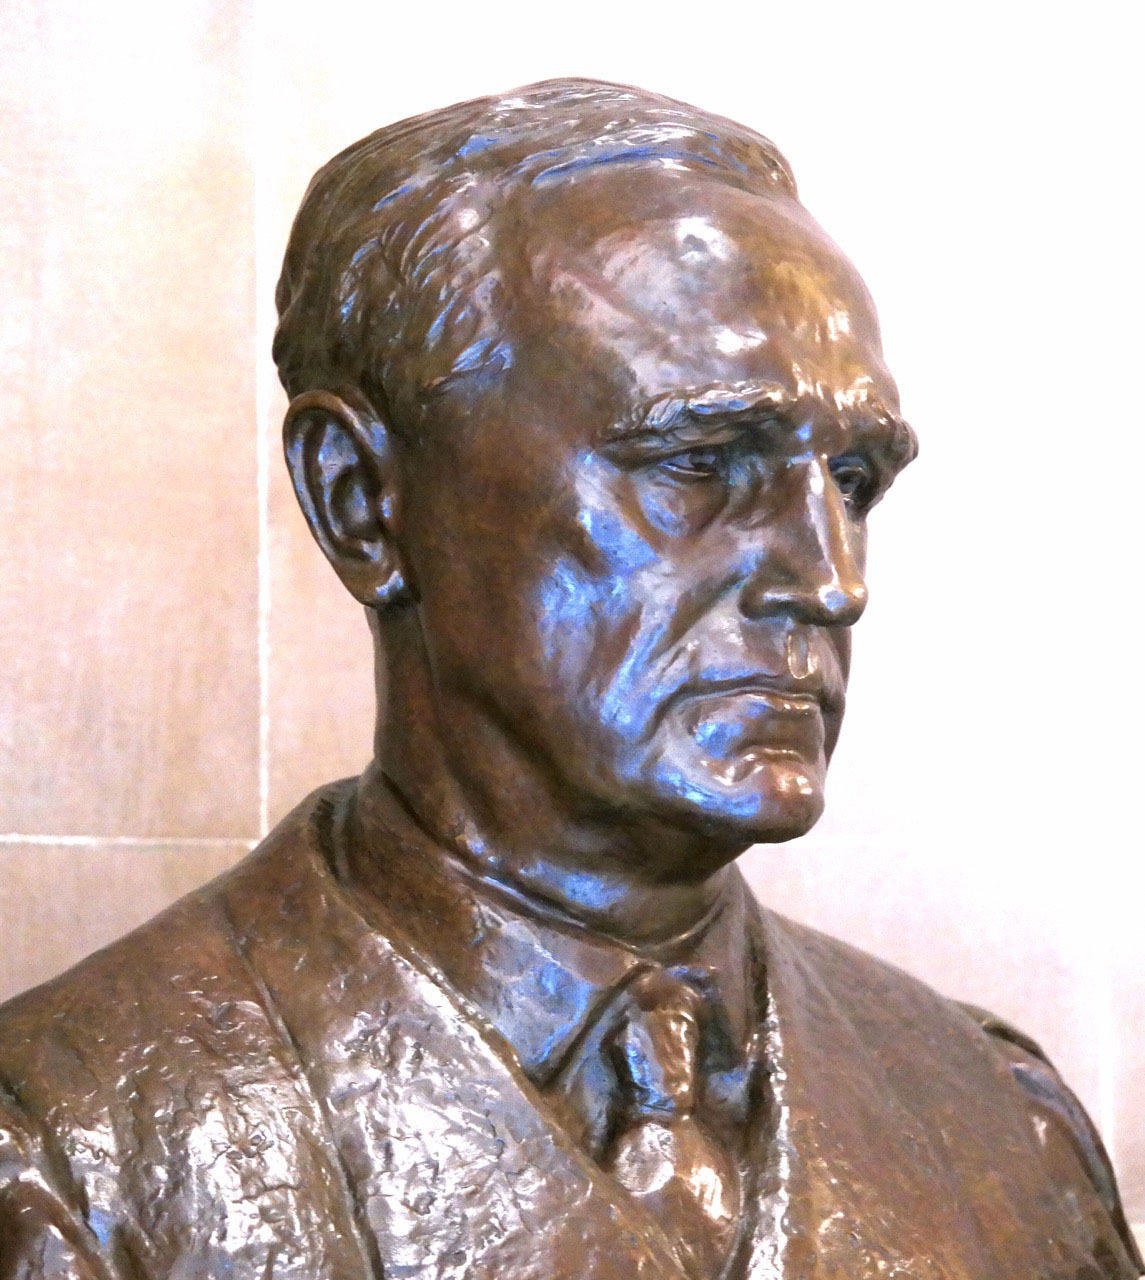 Shortly after Justice Minton's retirement from the Supreme Court in 1956, Gov. George N. Craig commissioned his bust to be placed on display at the Statehouse, 200 W. Washington Street, Indianapolis. Photo by Laura Harris.